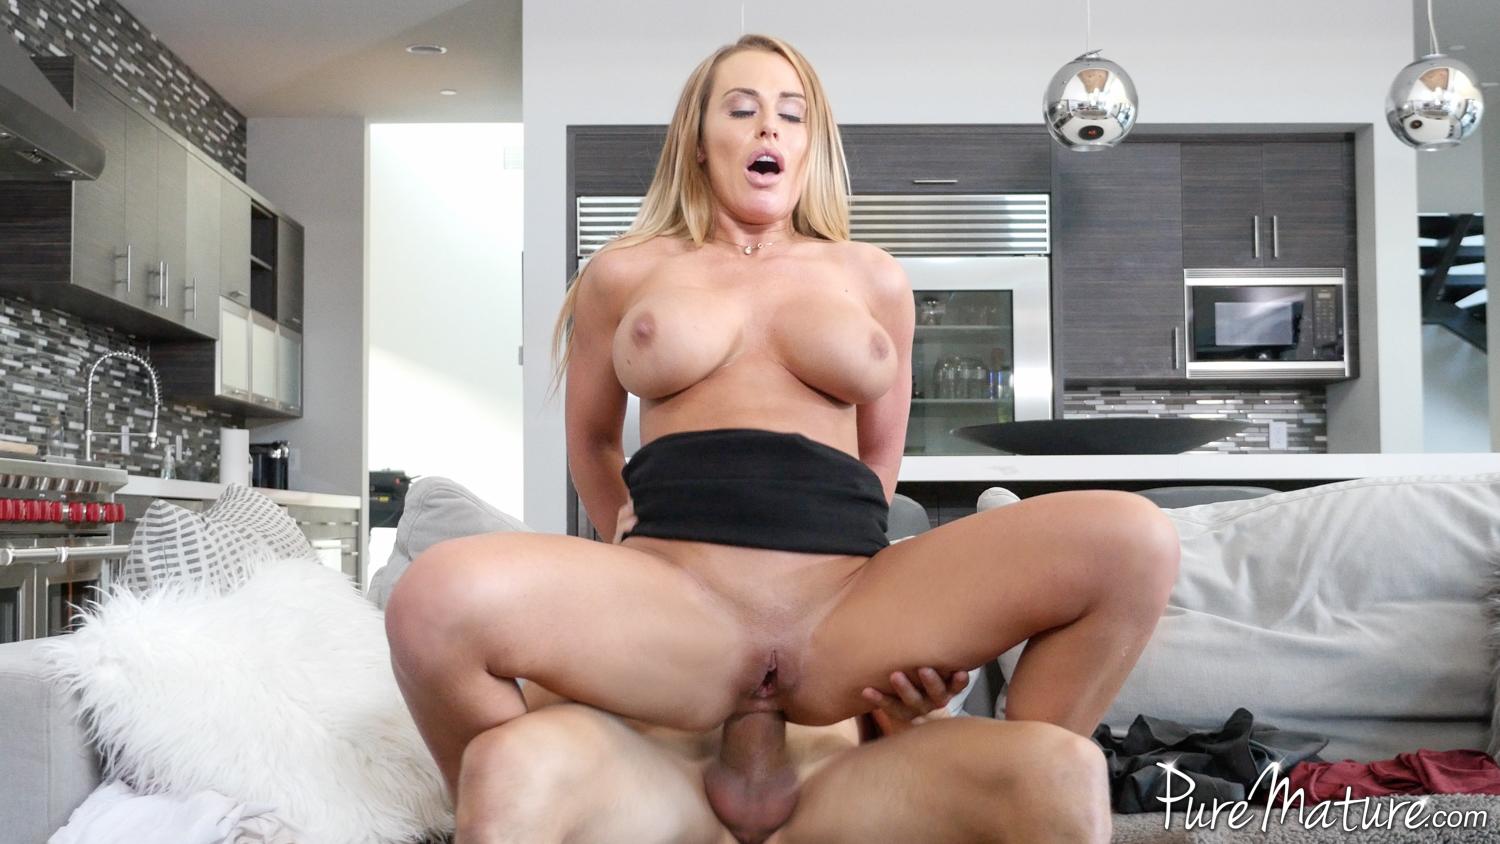 Molly jane fuck with his dad abuse